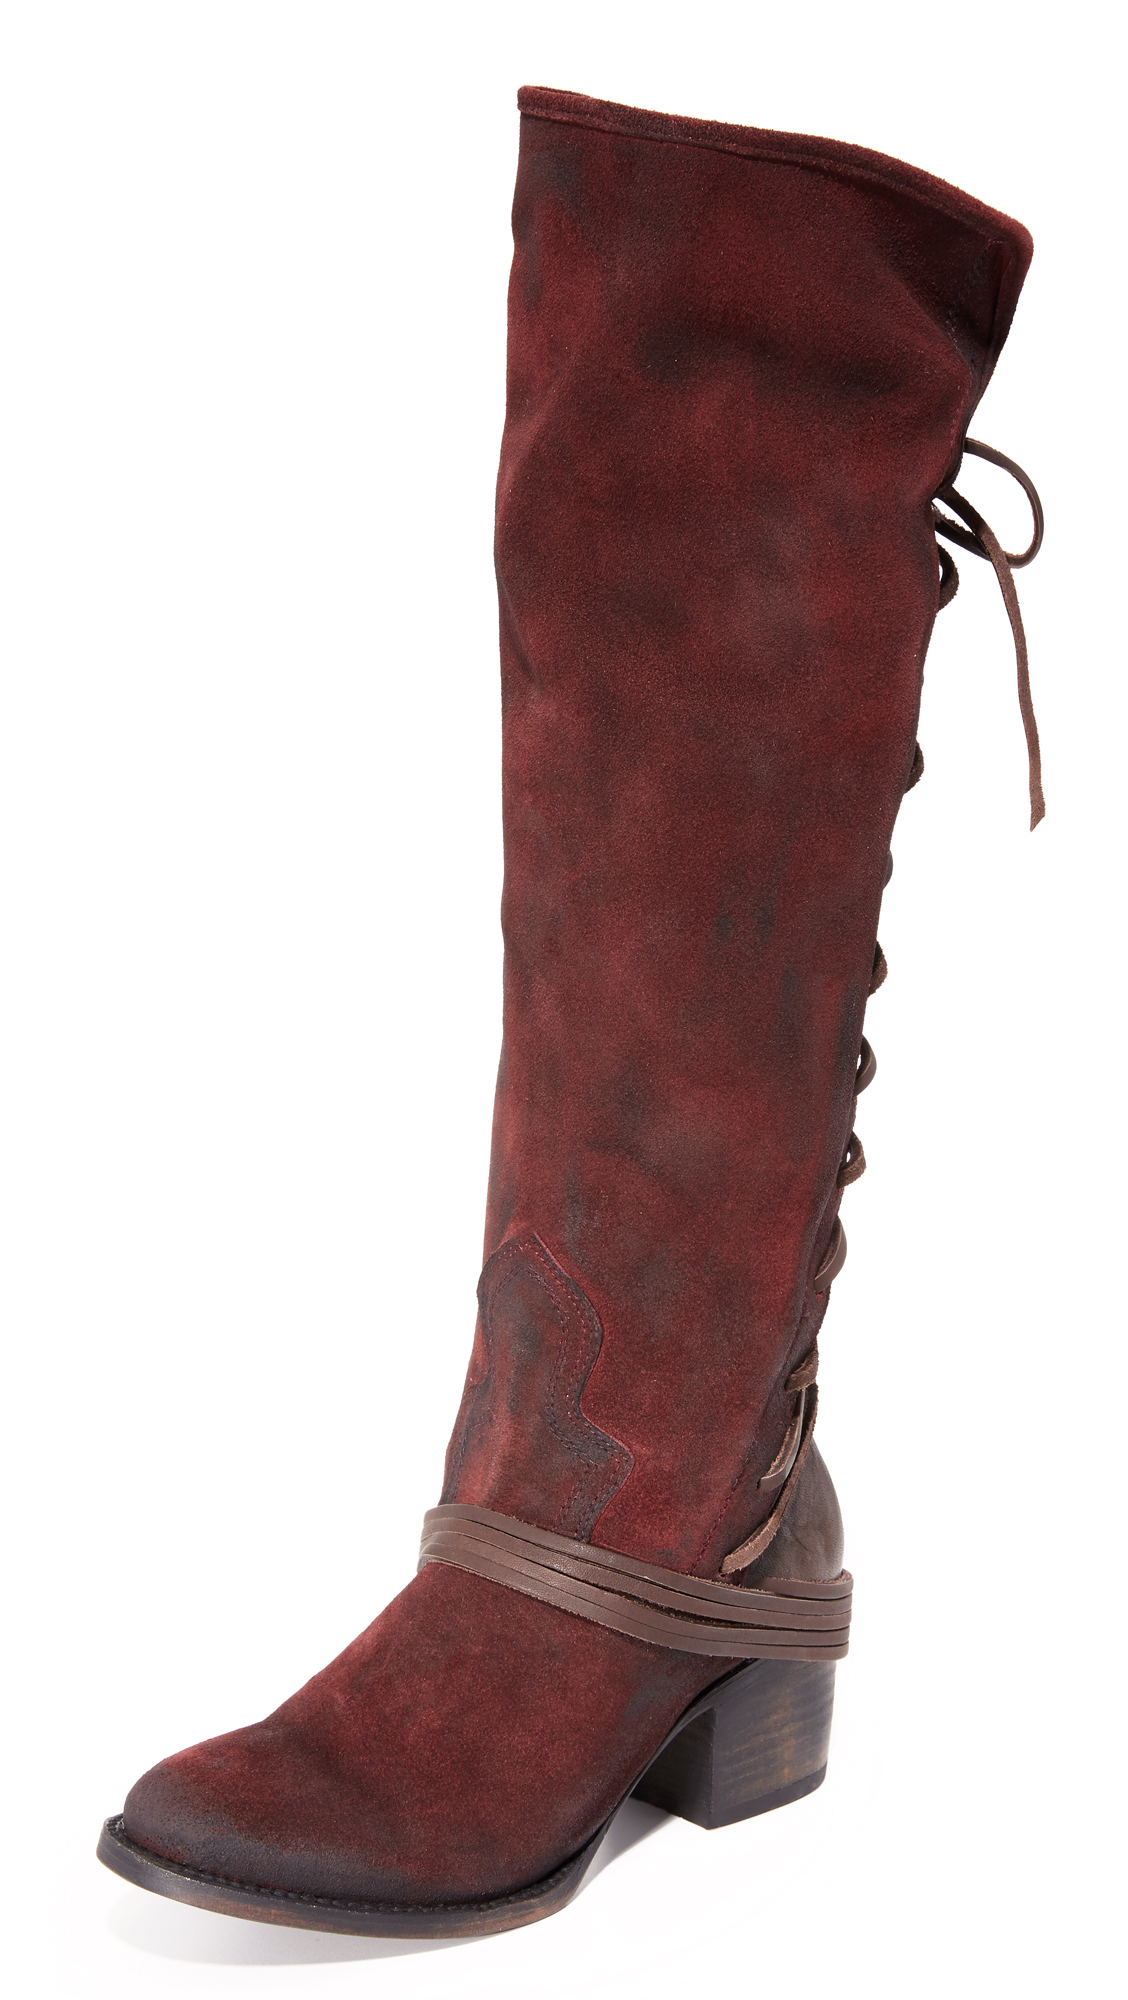 Freebird By Steven Coal Tall Boots - Wine